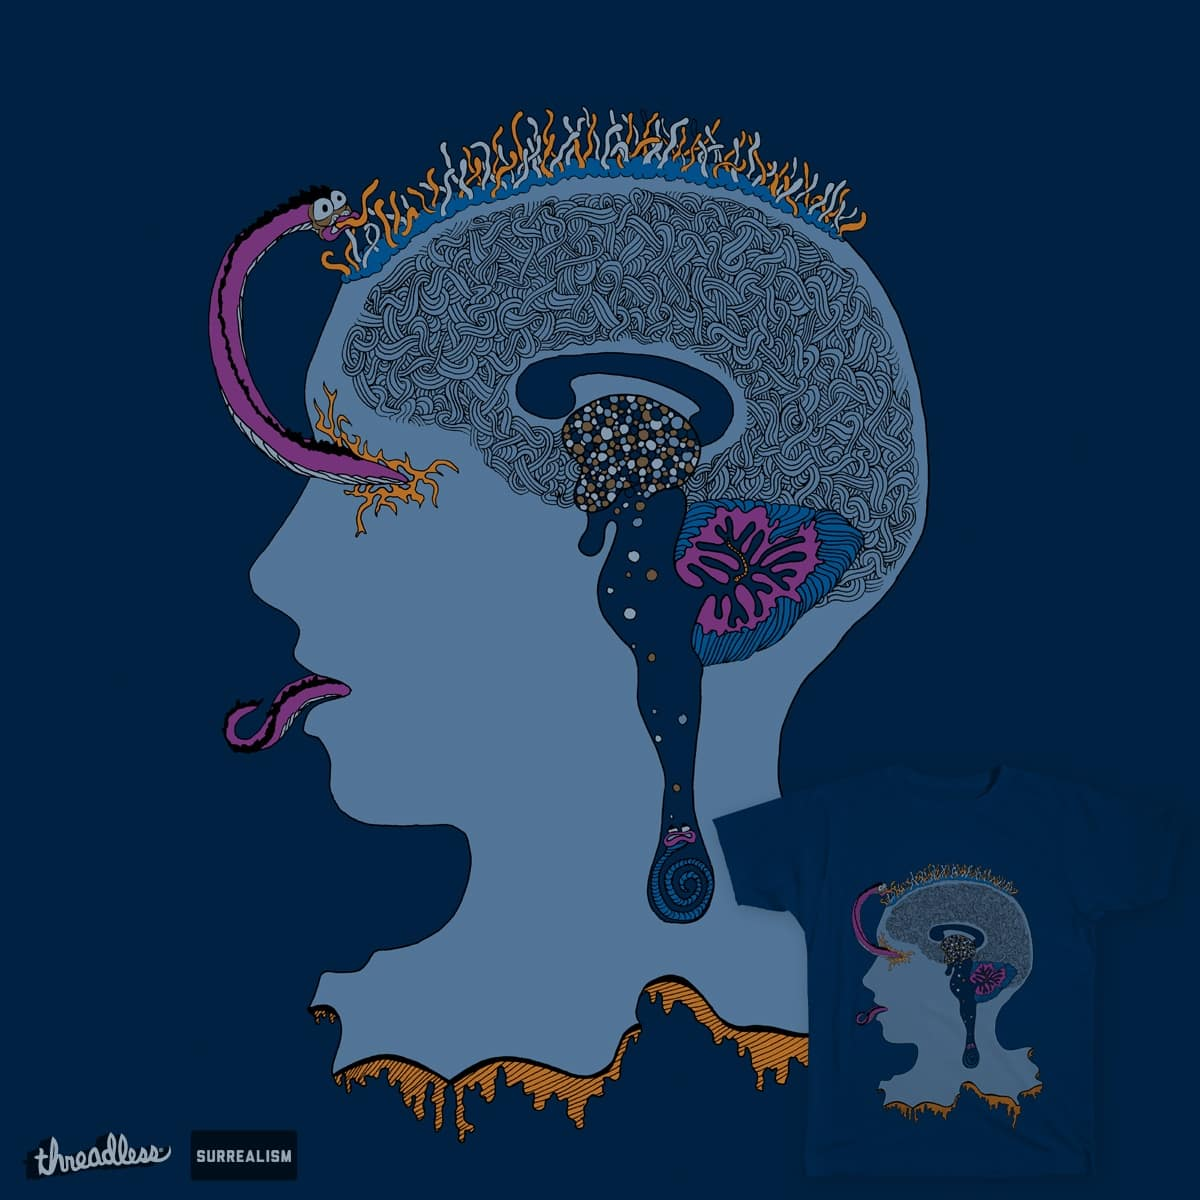 Infection of the mind by Lizberries on Threadless